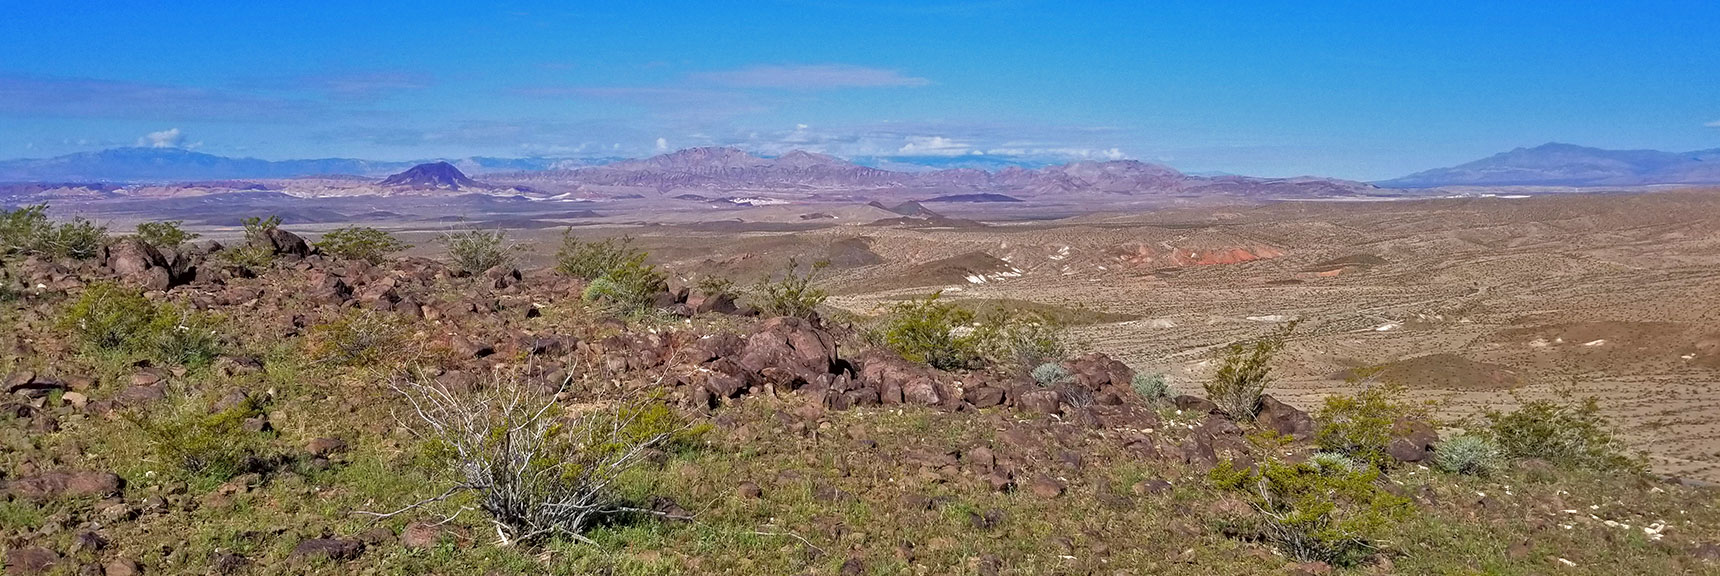 View West Toward Frenchman Mountain from Black Mesa in Lake Mead National Recreation Area, Nevada